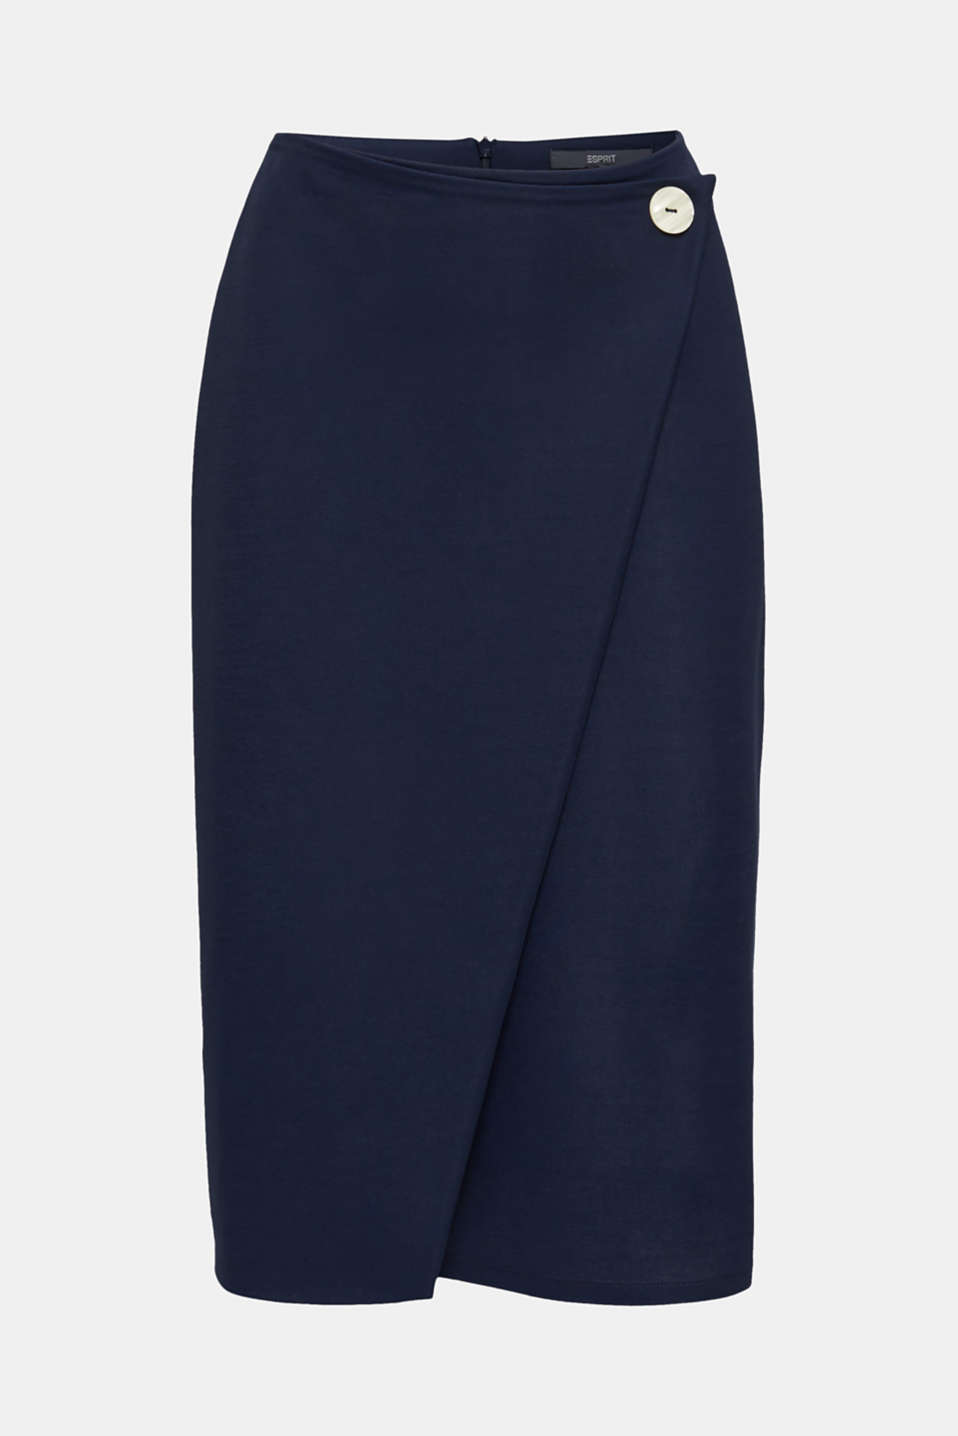 Stretch jersey skirt with a wrap-over effect, NAVY, detail image number 6